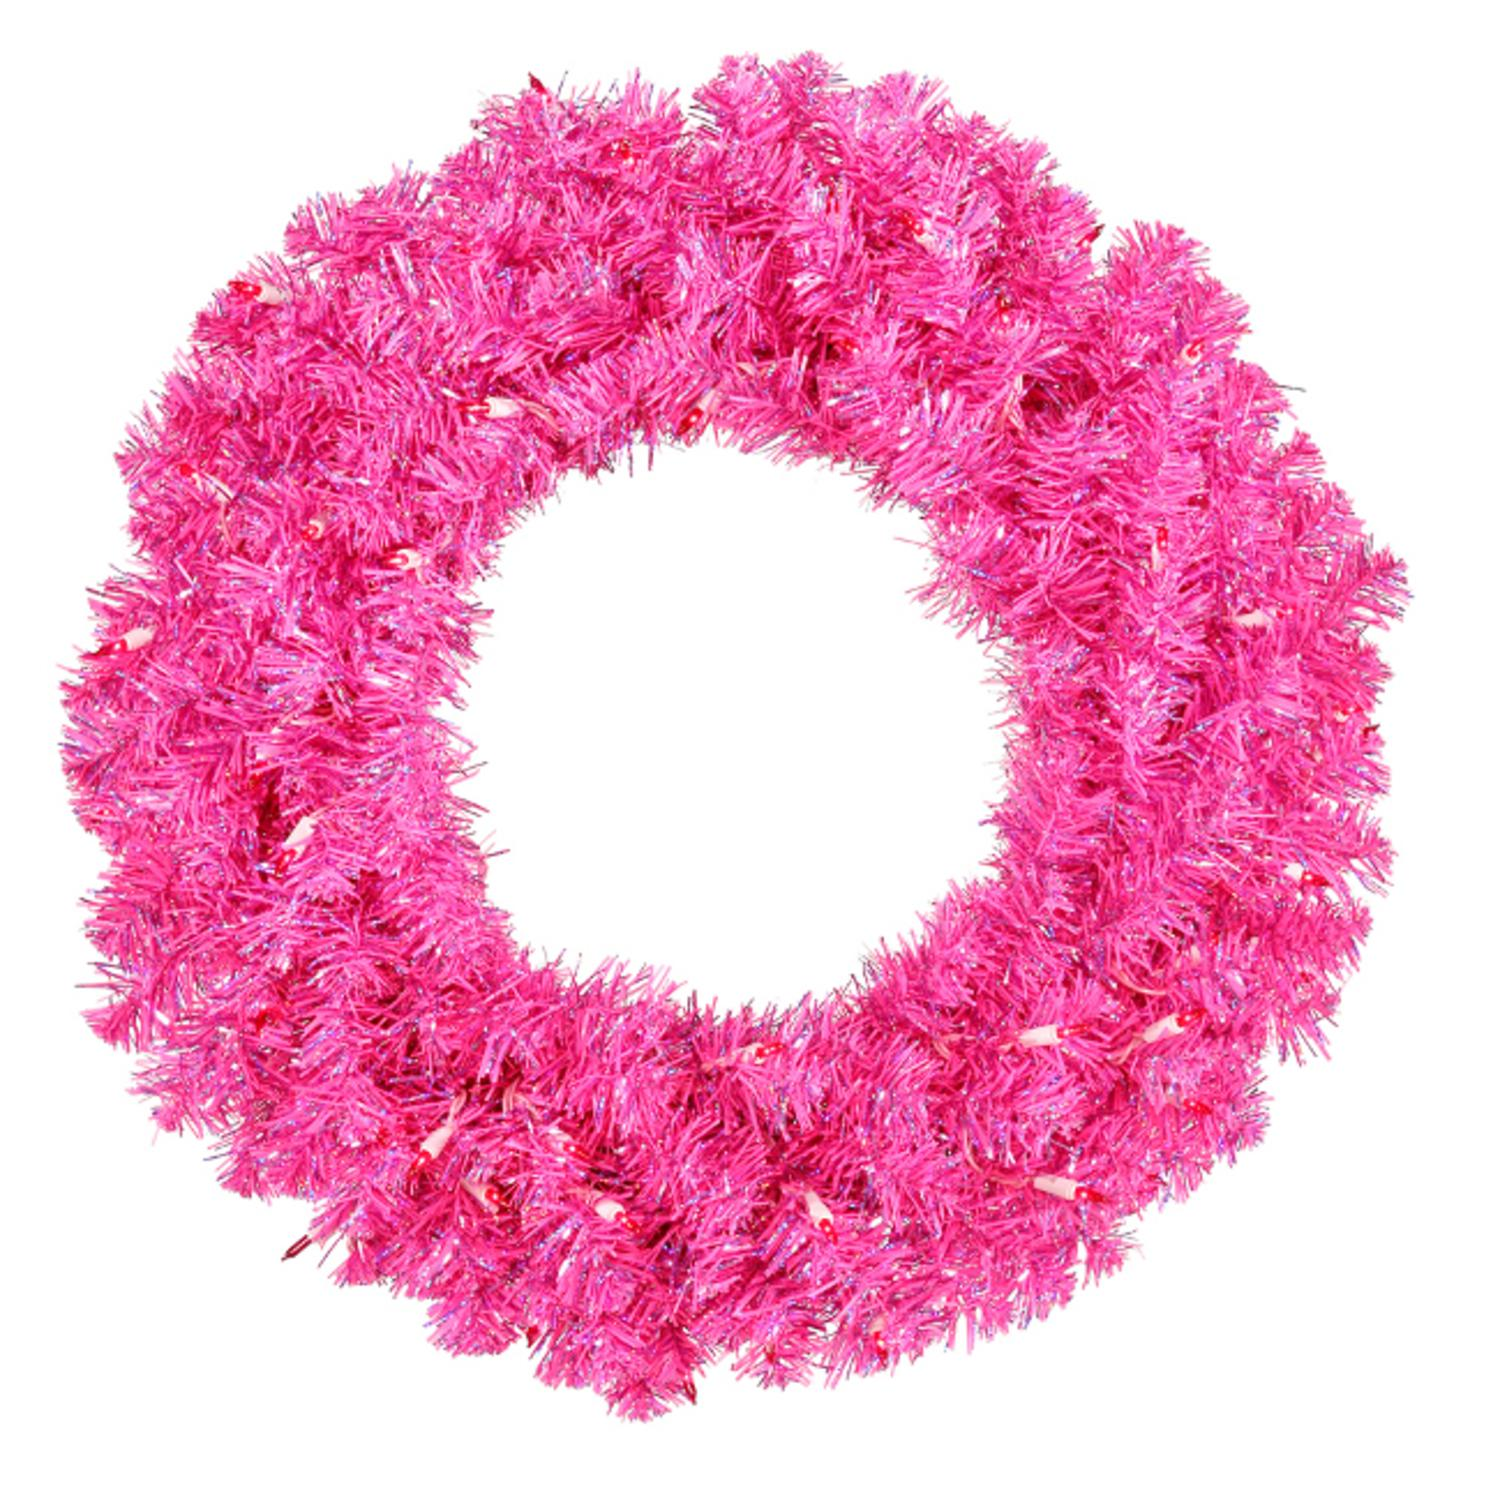 "Vickerman 36"" Prelit Sparkling Hot Pink Tinsel Artificial Christmas Wreath - Pink Lights"